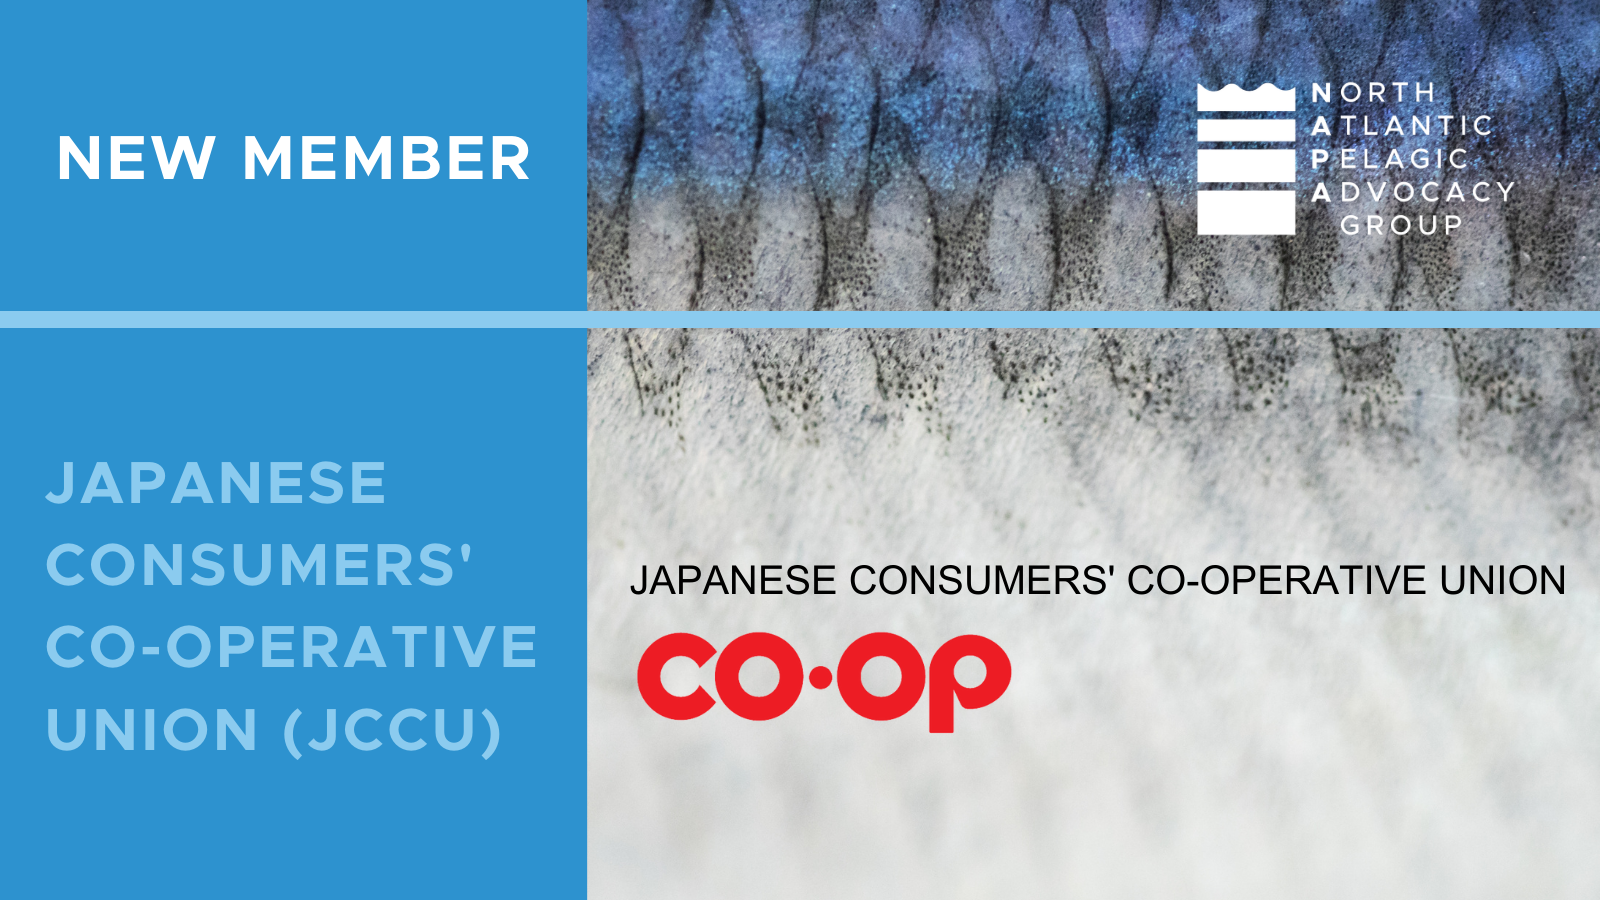 The North Atlantic Pelagic Advocacy Group (NAPA) has announced its first member from Asia, the Japanese Consumers' Co-operative Union (JCCU)